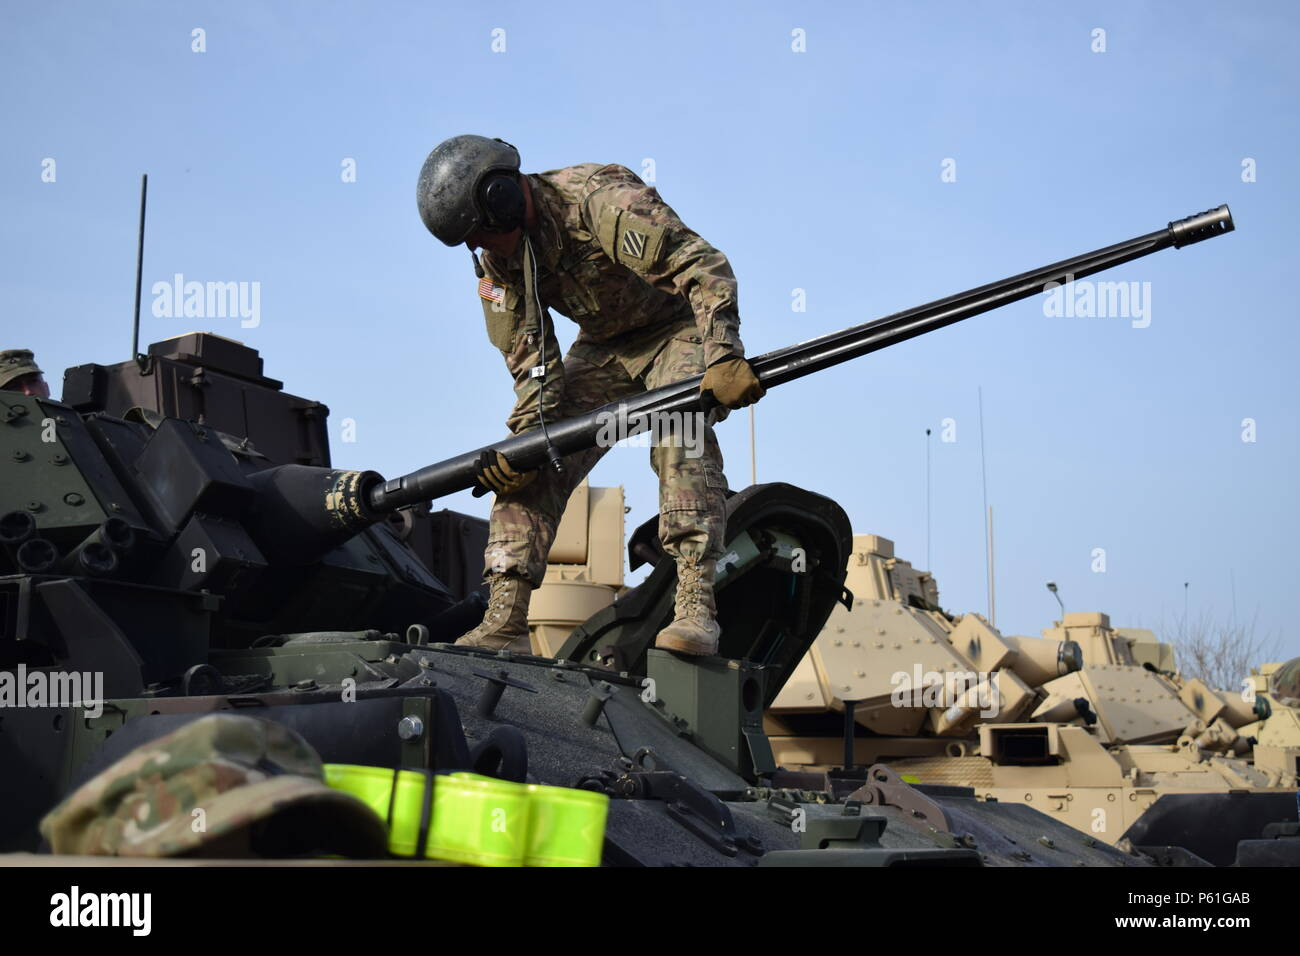 Soldiers from 1st Battalion, 64th Armor Regiment perform Preventive Maintenance Checks and Services on an M2A3 Bradley Infantry Fighting Vehicle as they draw equipment from the European Activity Set at Mihail Kogălniceanu Air Base, Romania April 7. PMCS is a precursor of signing for the equipment, which the battalion will use to shoot gunnery in Romania to prepare the battalion to join over 25,000 participants from 24 countries for Exercise Anakonda 16 in Poland. Anakonda 16 is a Polish national exercise that seeks to train, exercise and integrate Polish national command and force structures Stock Photo